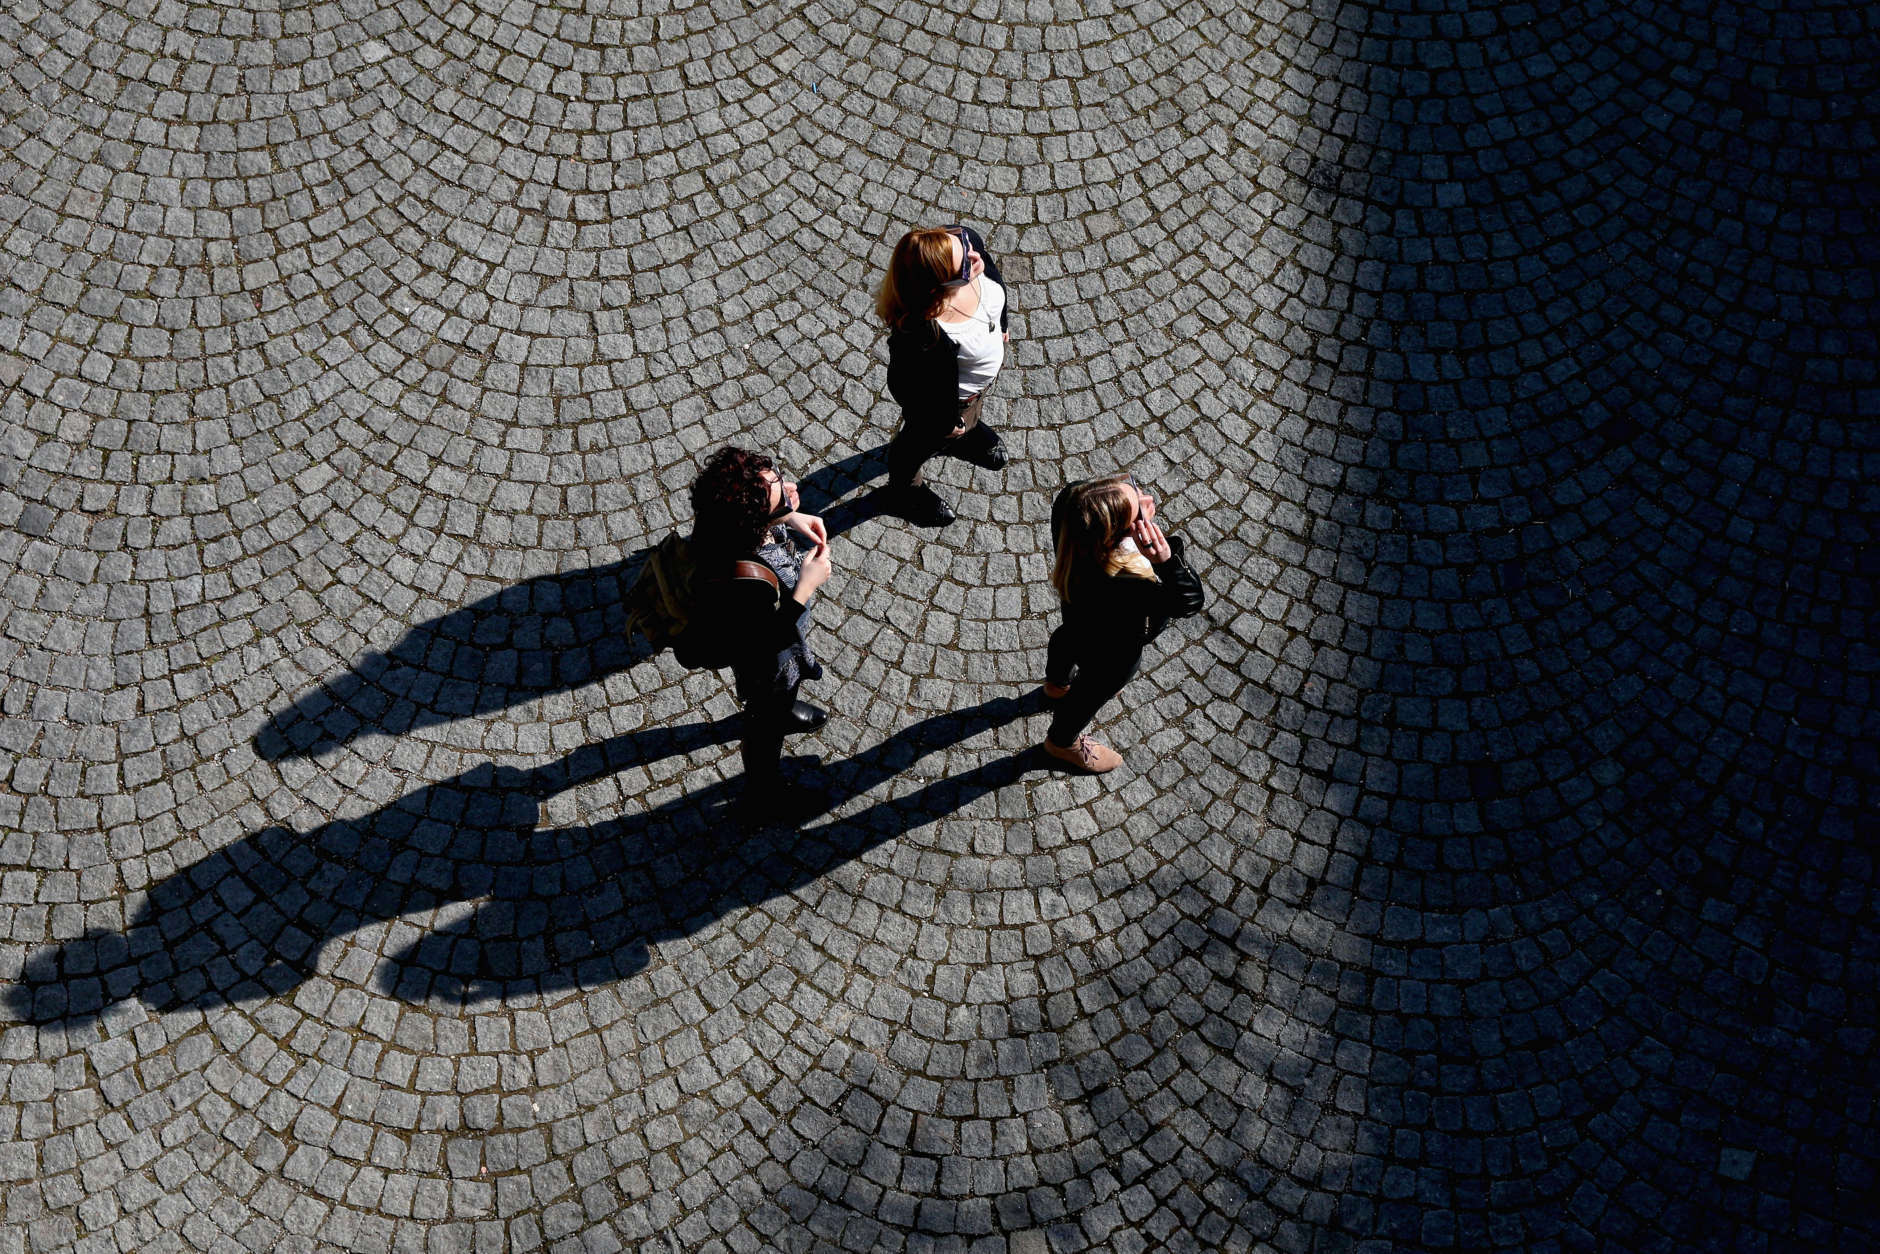 MUNICH, GERMANY - MARCH 20:  People use special glasses to look into the sky at a partial solar eclipse on March 20, 2015 in Munich, Germany. Over Central Europe the moon was scheduled to cover approximately 75% of the sun for a short period starting at approximately 9:30am. The next solar eclipse will not occur until 2021.  (Photo by Alexander Hassenstein/Getty Images)